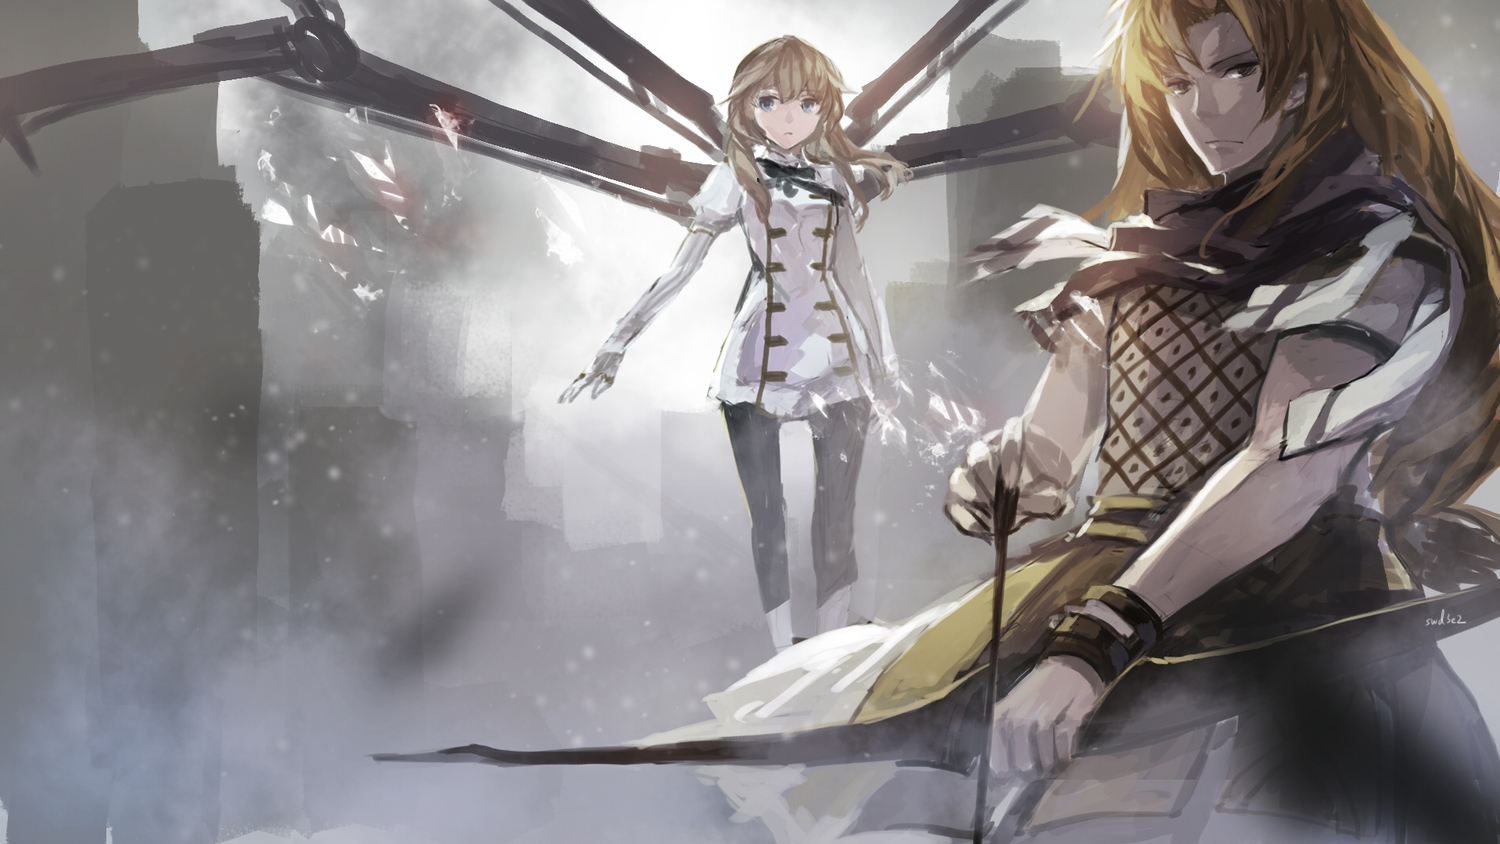 2girls blonde_hair bow_(weapon) brown_hair chiron fate/apocrypha fate_(series) fiore_forvedge_yggdmillennia long_hair swd3e2 weapon wristwear